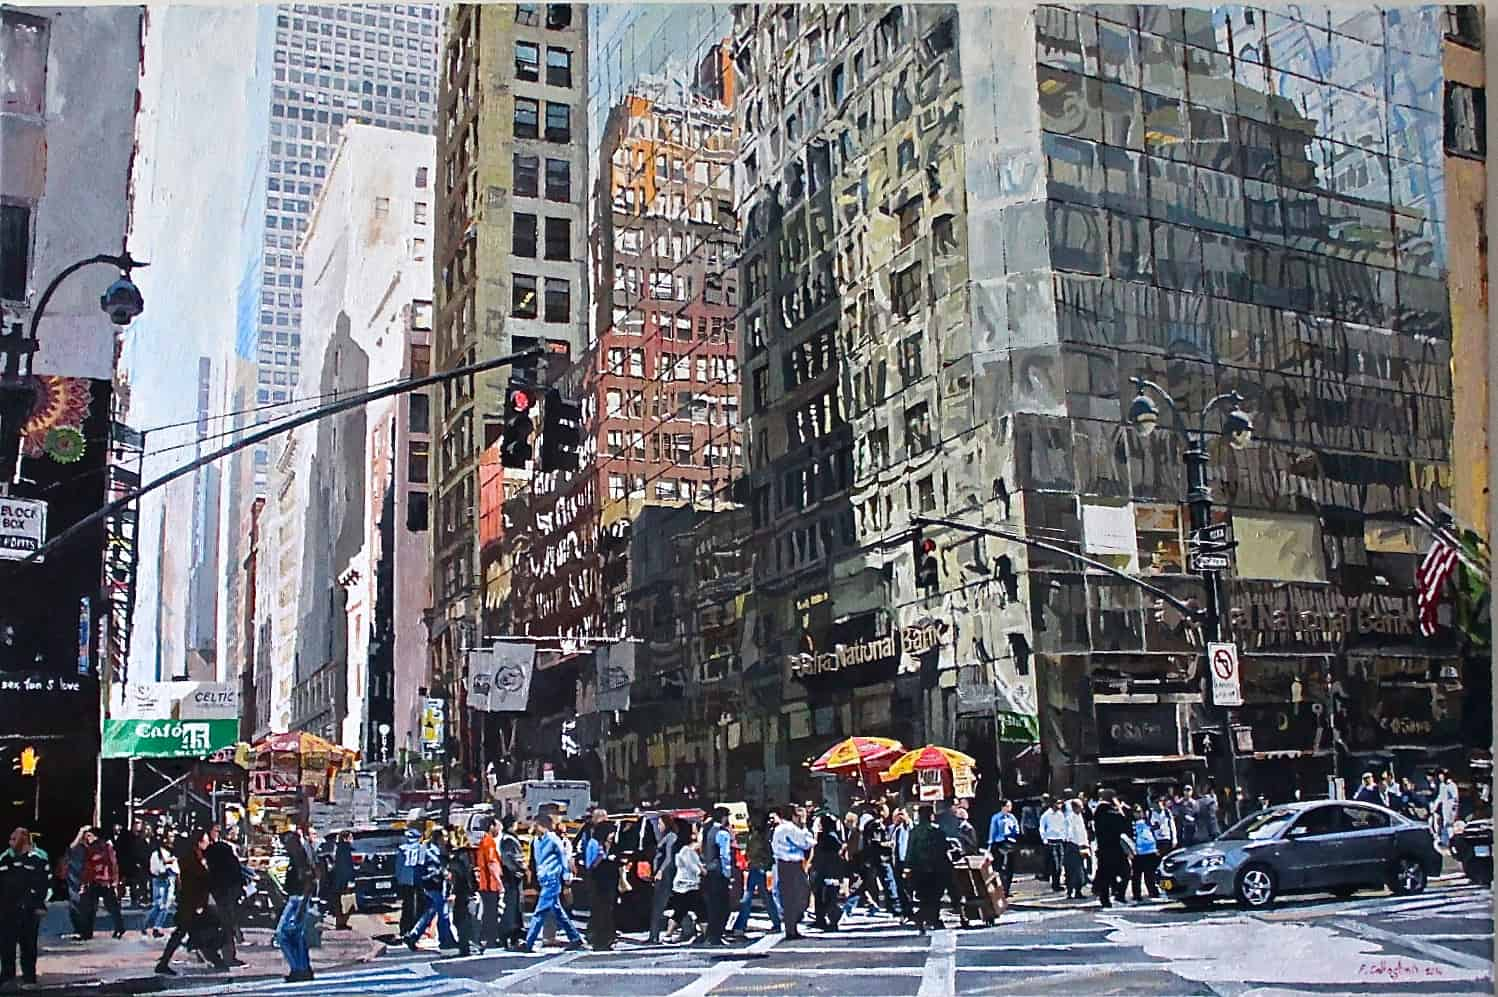 5th Avenue NY Painted by Frank Callaghan